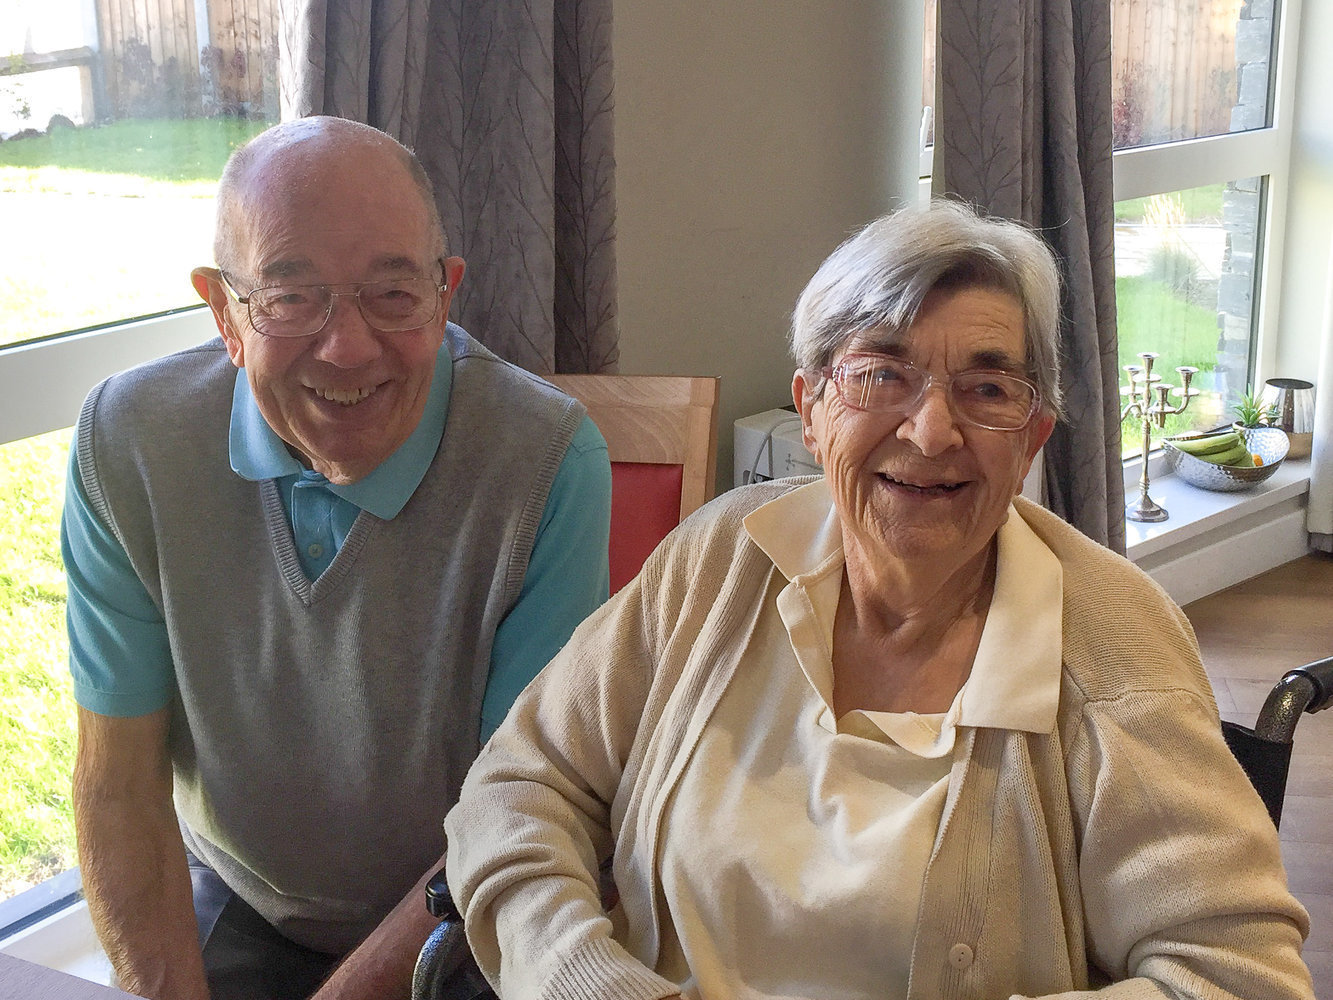 65th Wedding Anniversary at Chelmunds Court